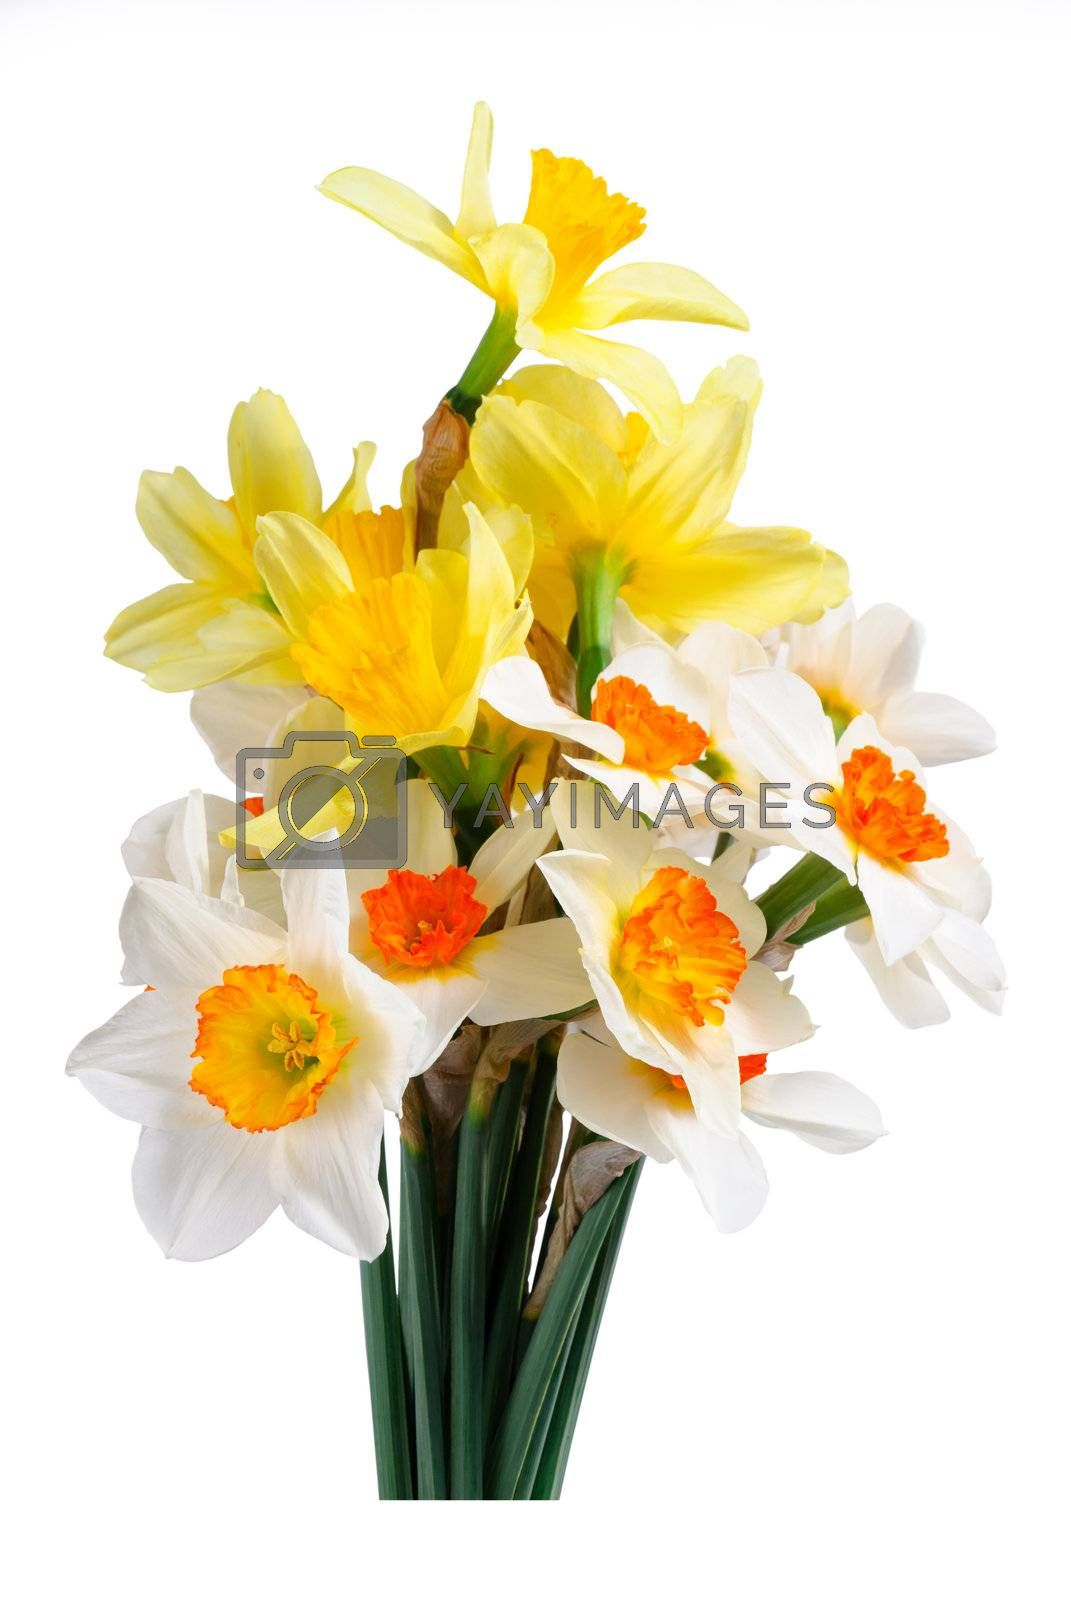 Beautyful bouquet of yellow and white narcissus isolated on a white background